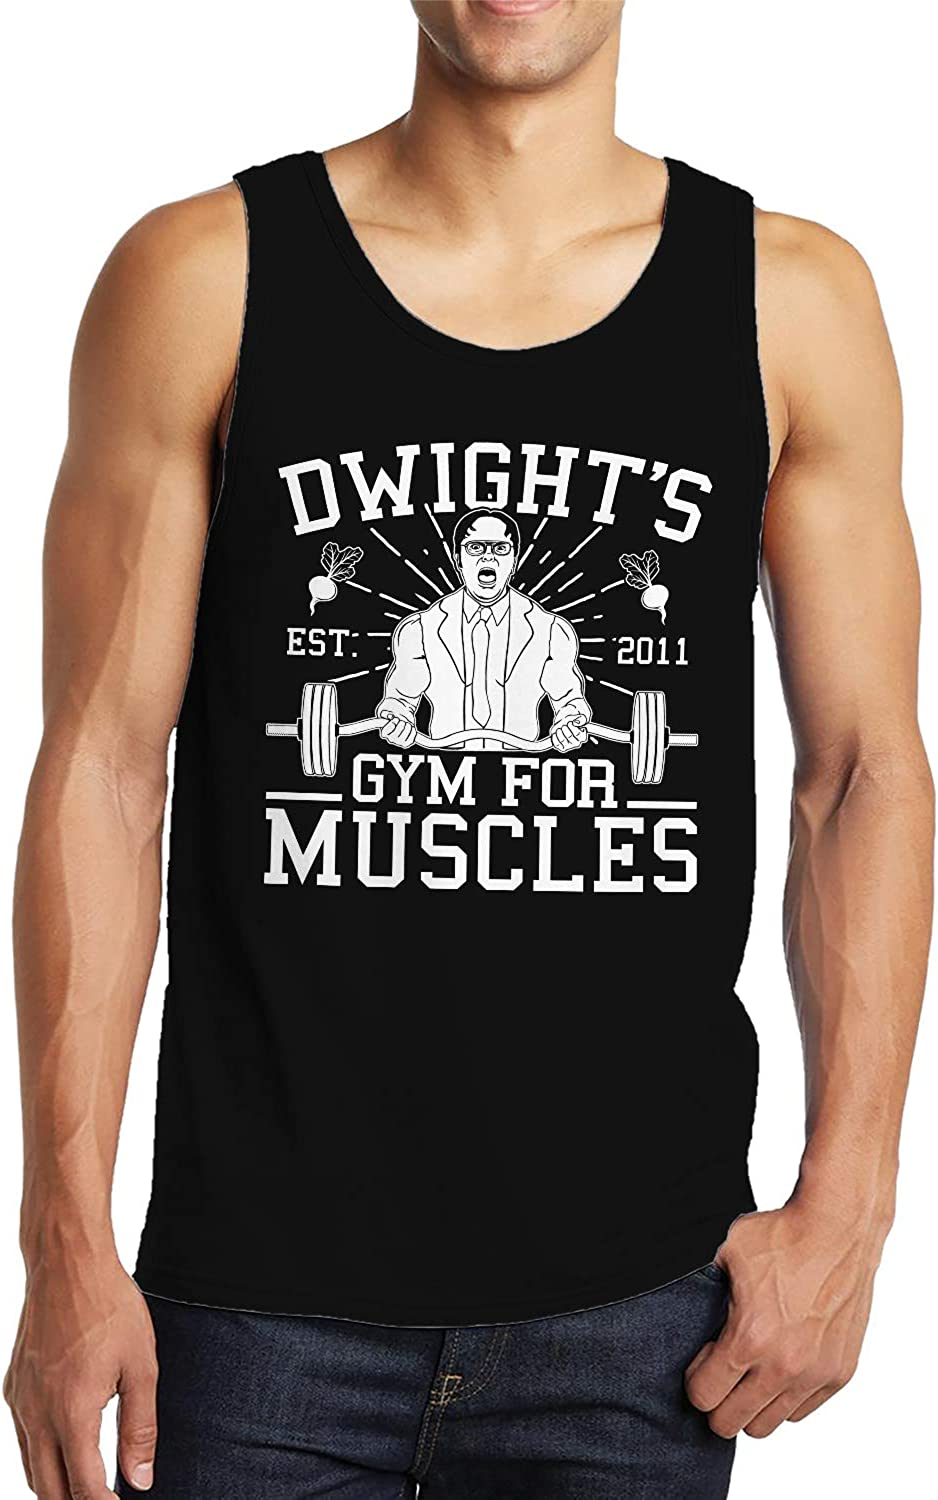 SpiritForged Apparel Dwight's Gym for Muscles Men's Tank Top